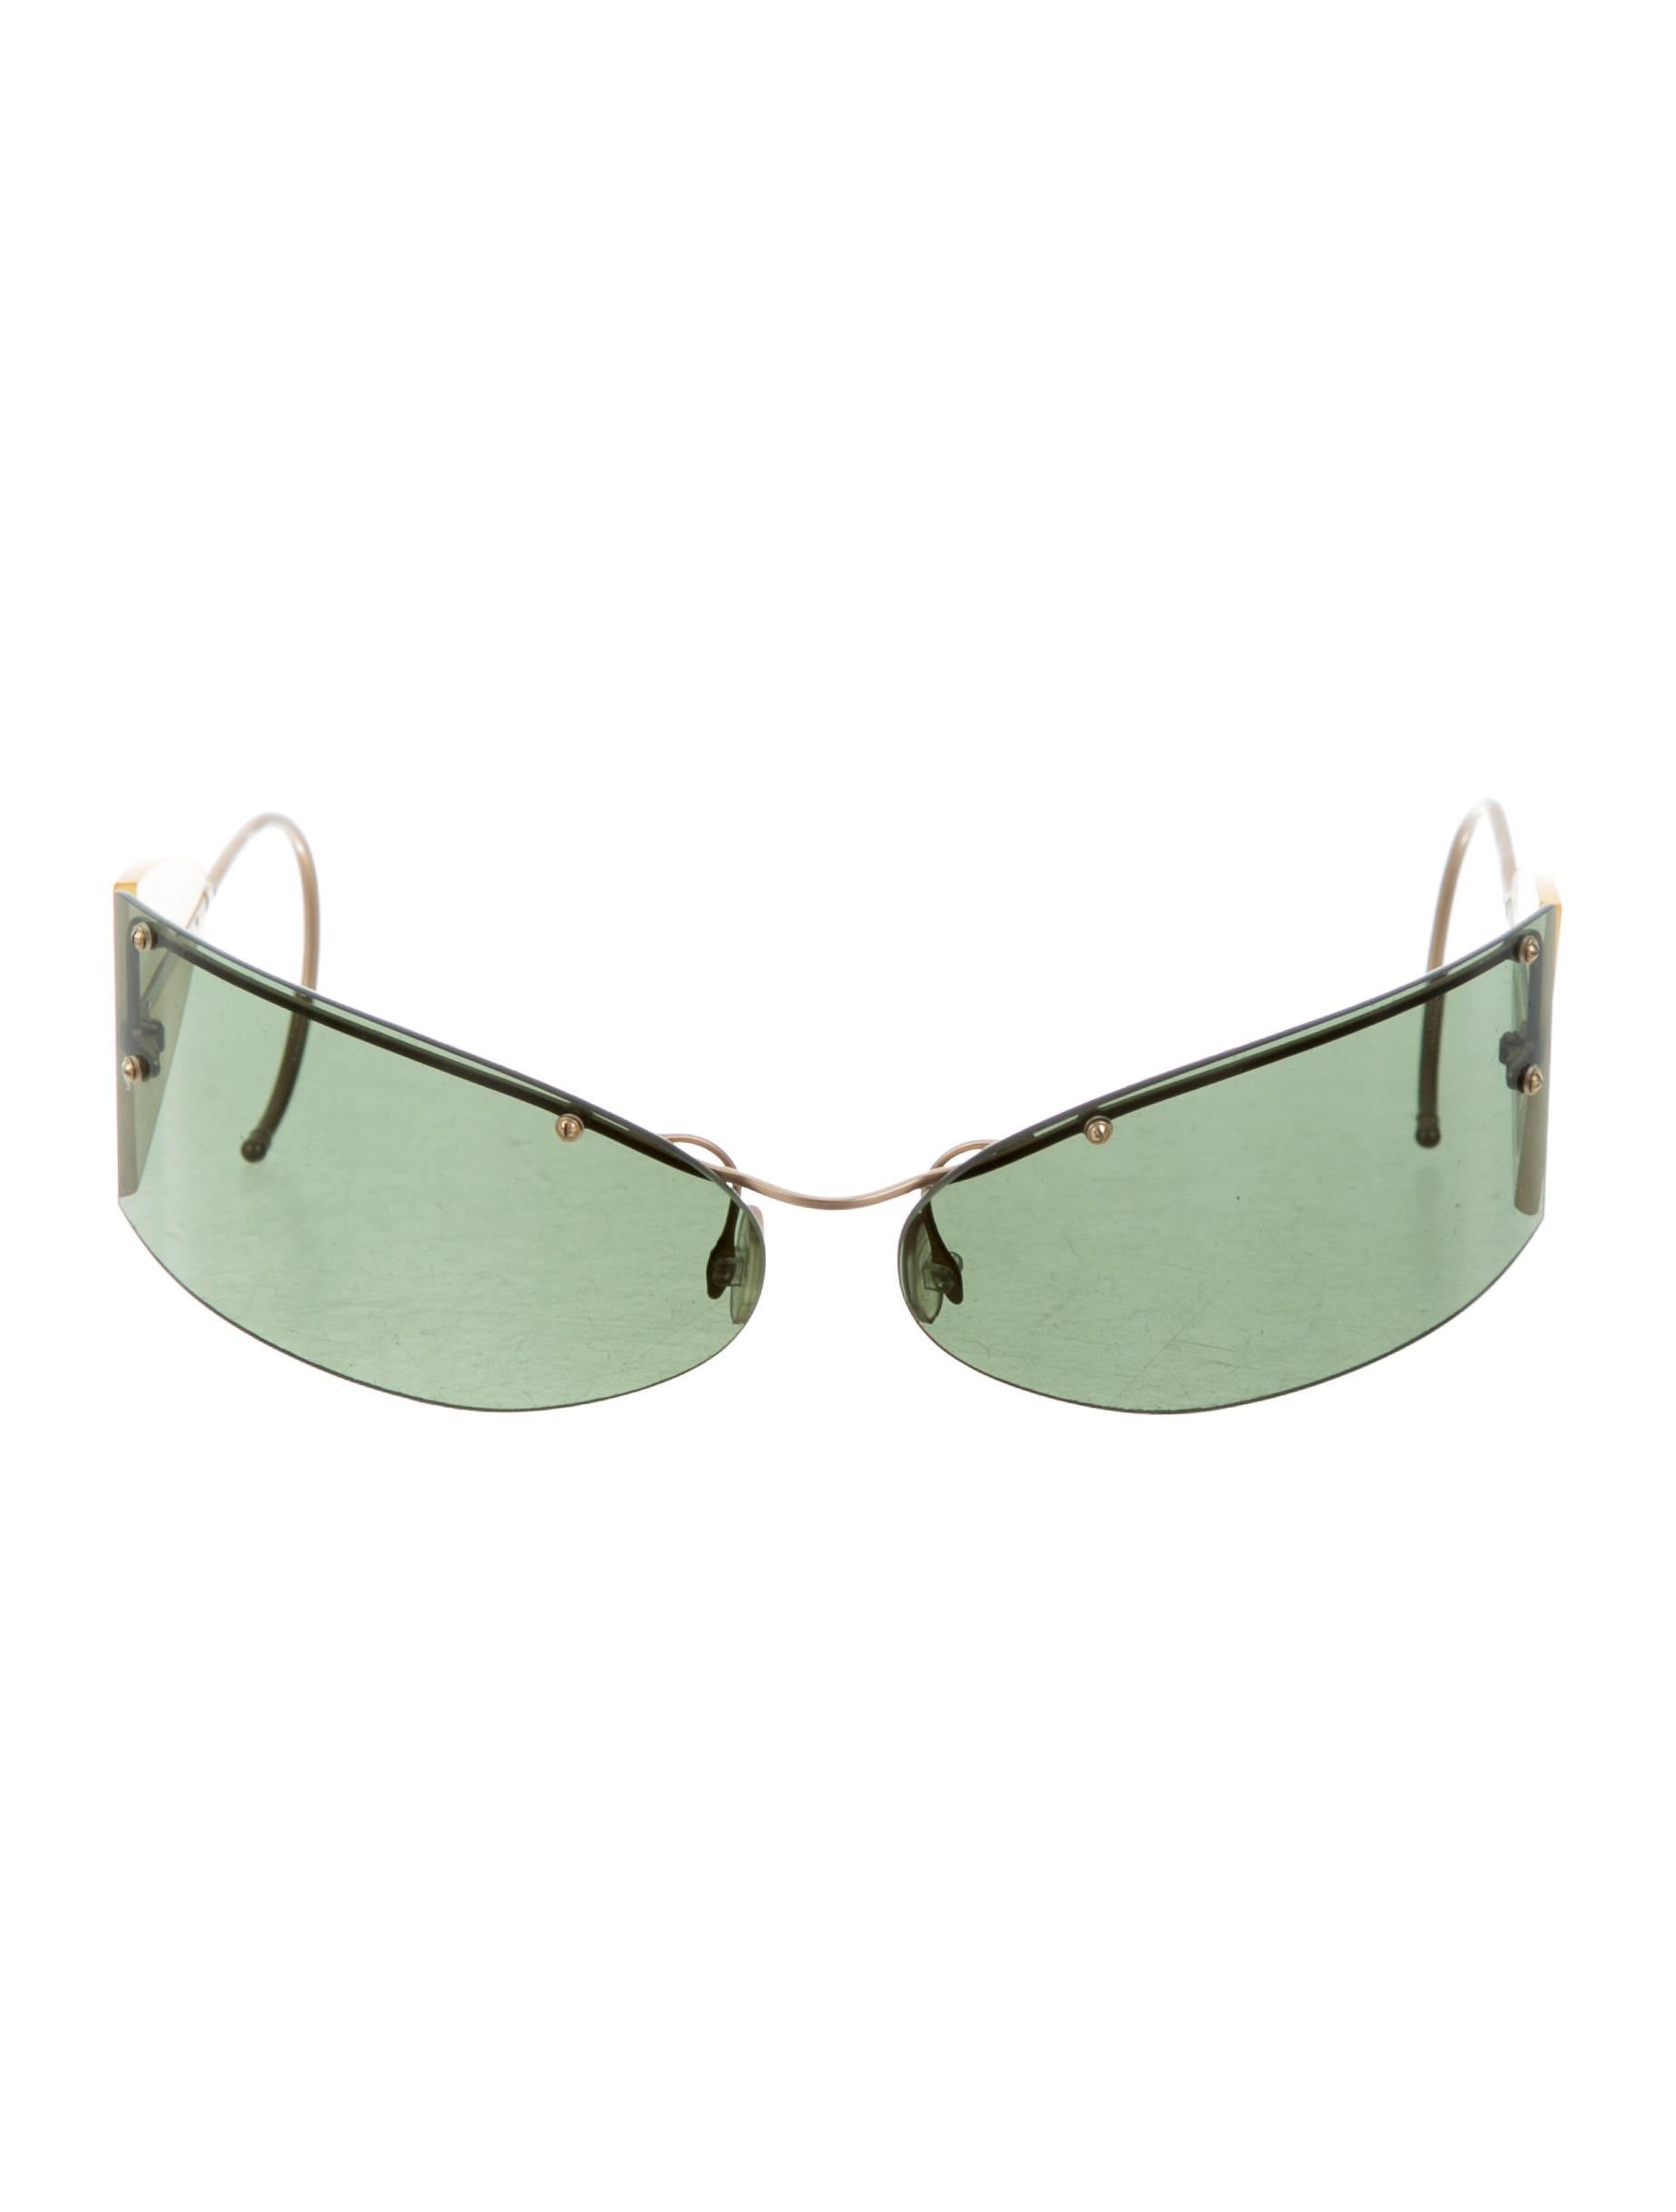 52a8e5dfc76 Prada Rimless Glasses